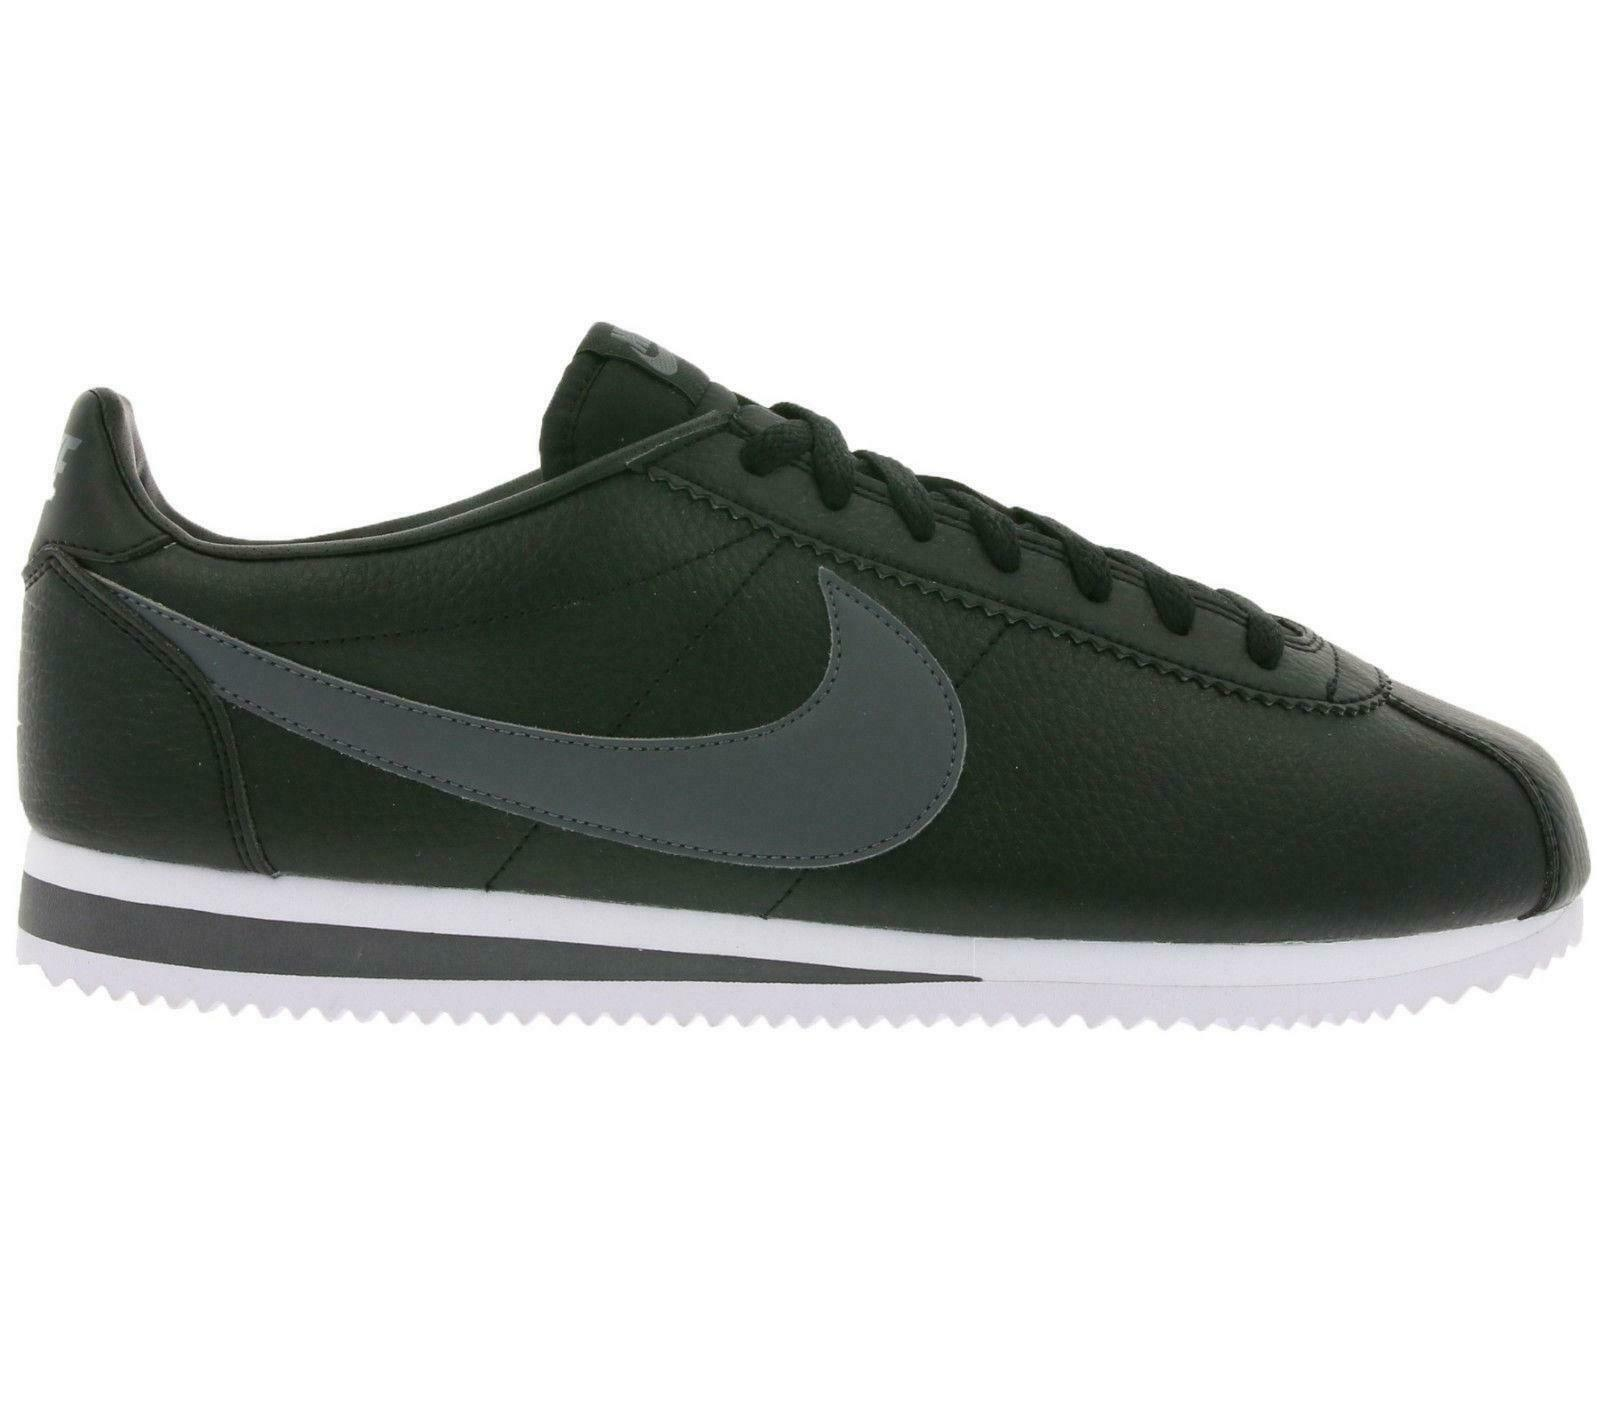 40416605682 Mens NIKE CORTEZ LEATHER Black 749571 011 Trainers CLASSIC ...